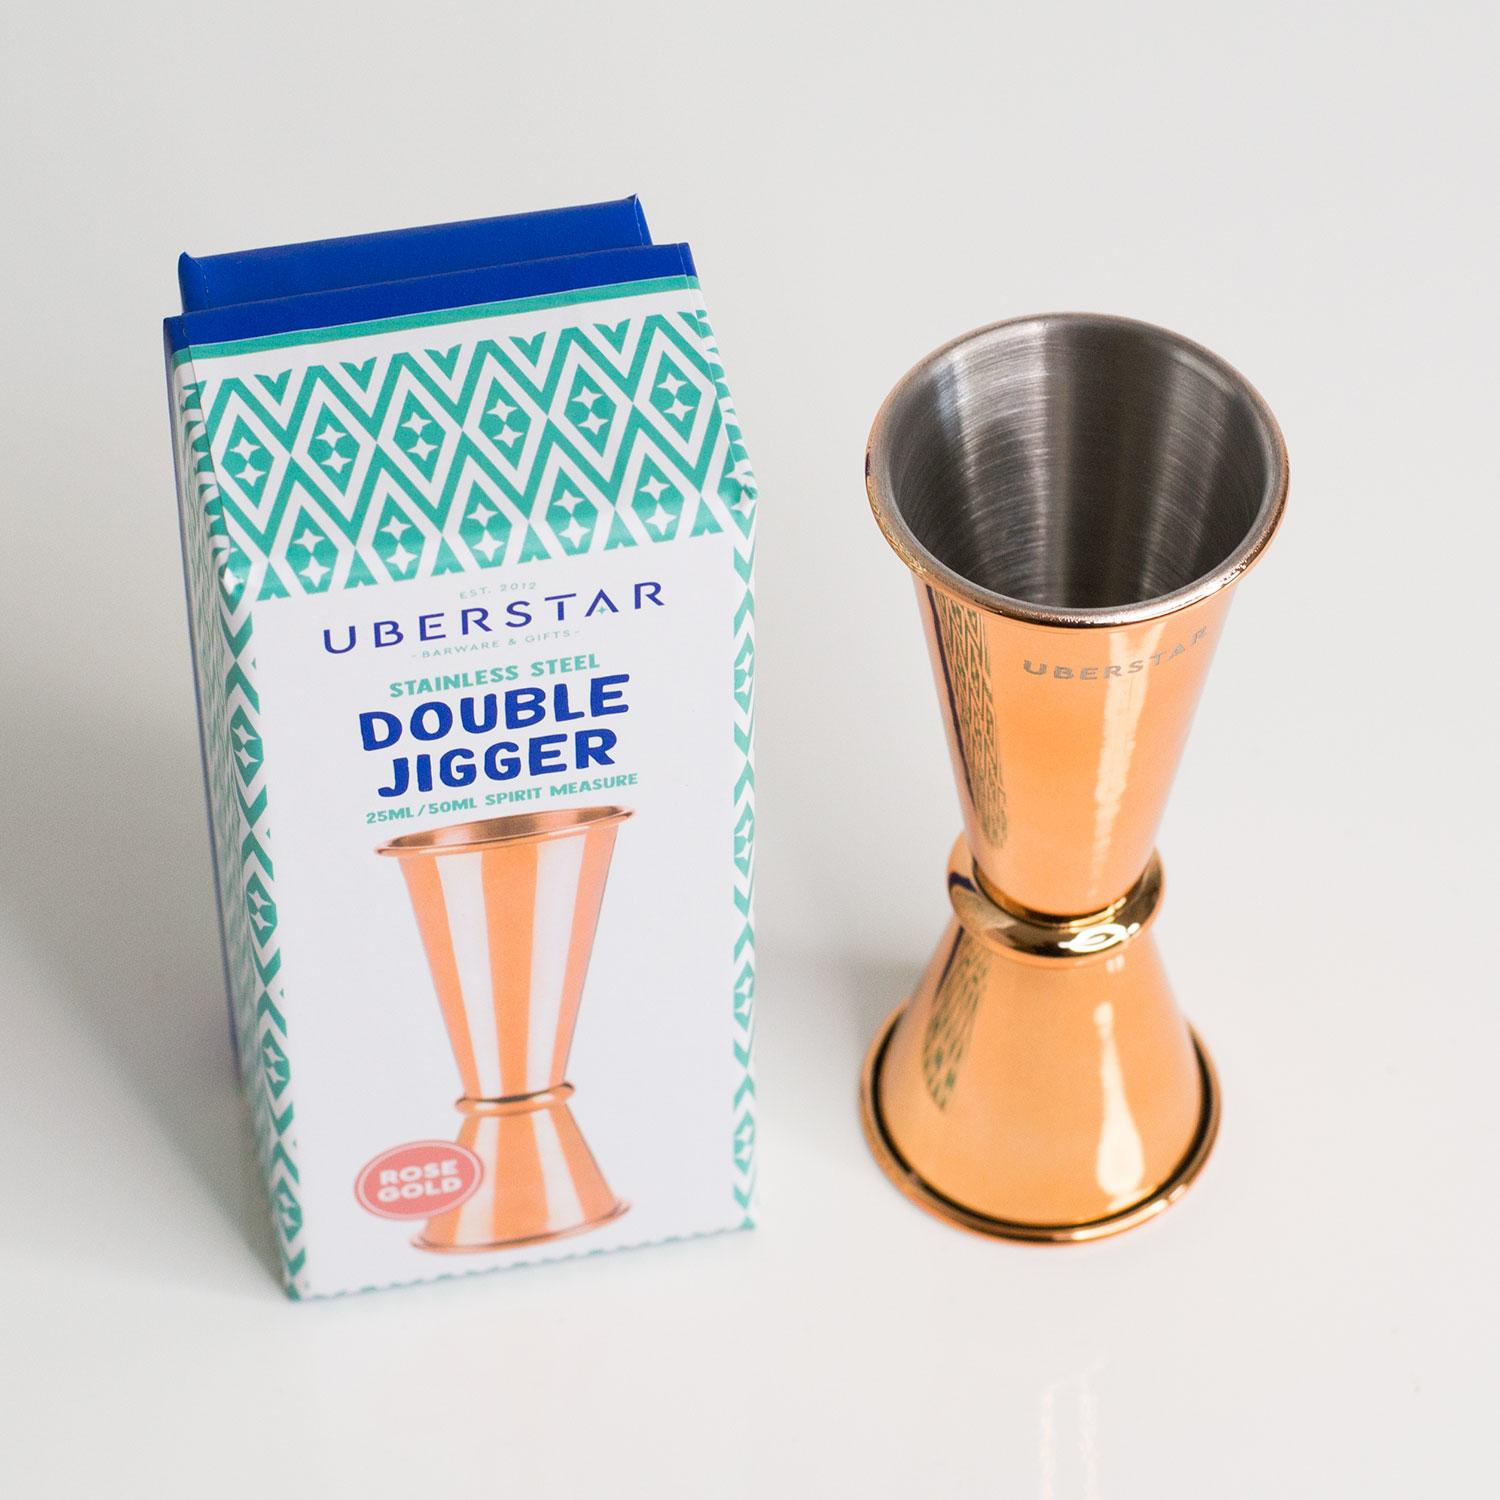 Uberstar Double Jigger - Rose Gold £8.99